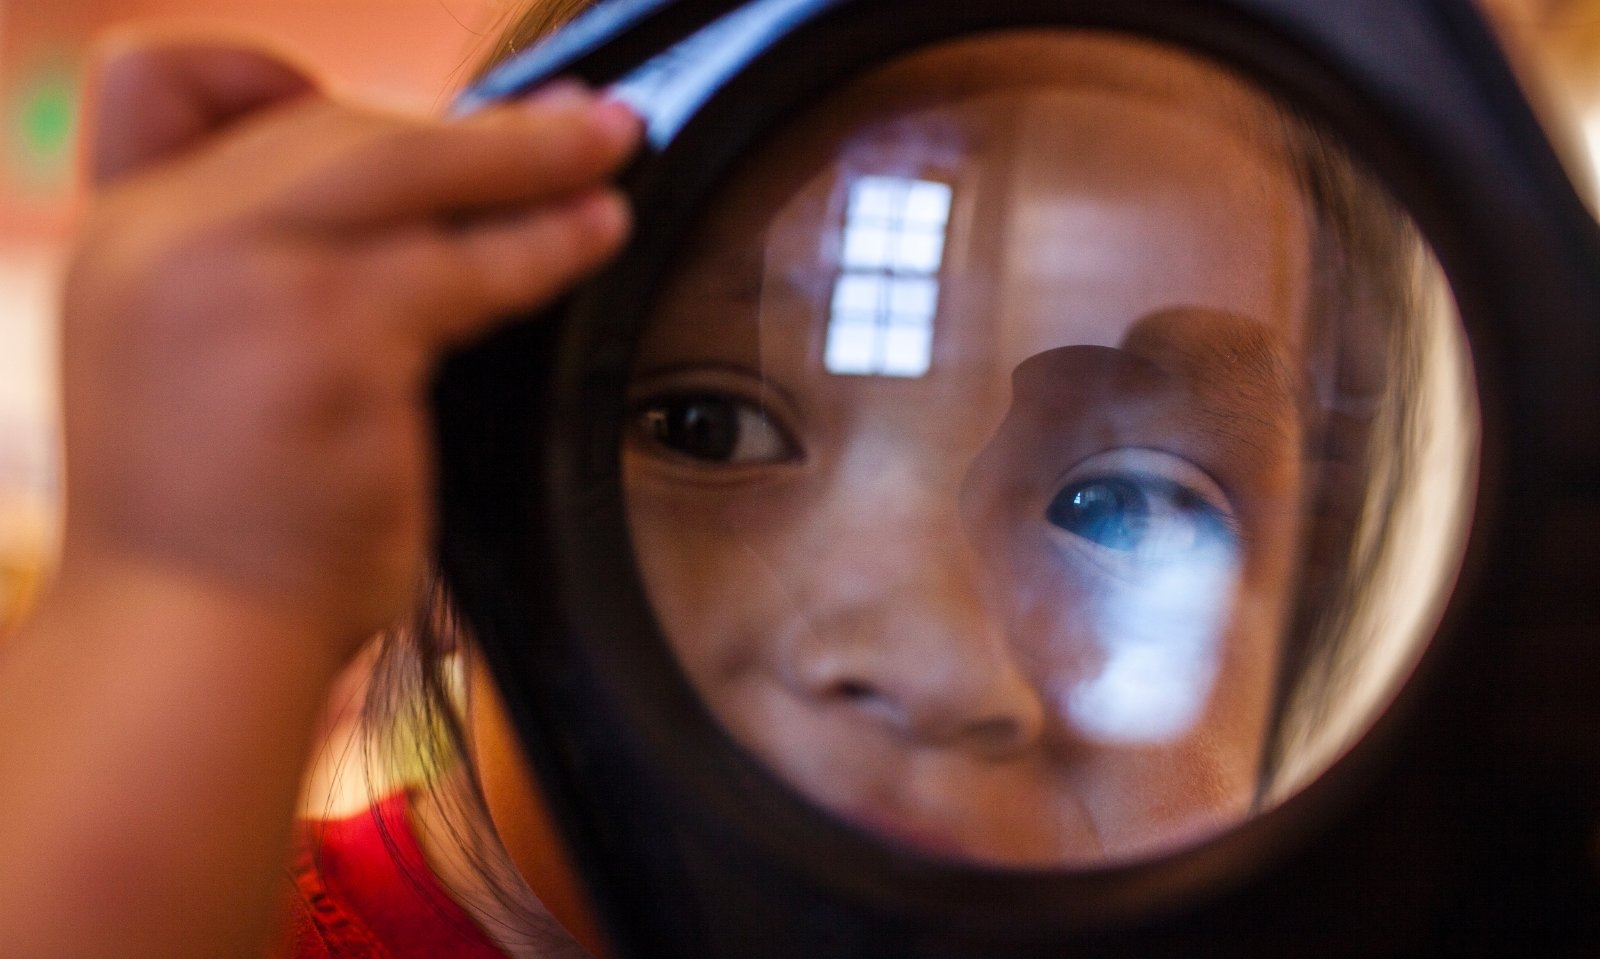 A child looks through a large magnifying glass.